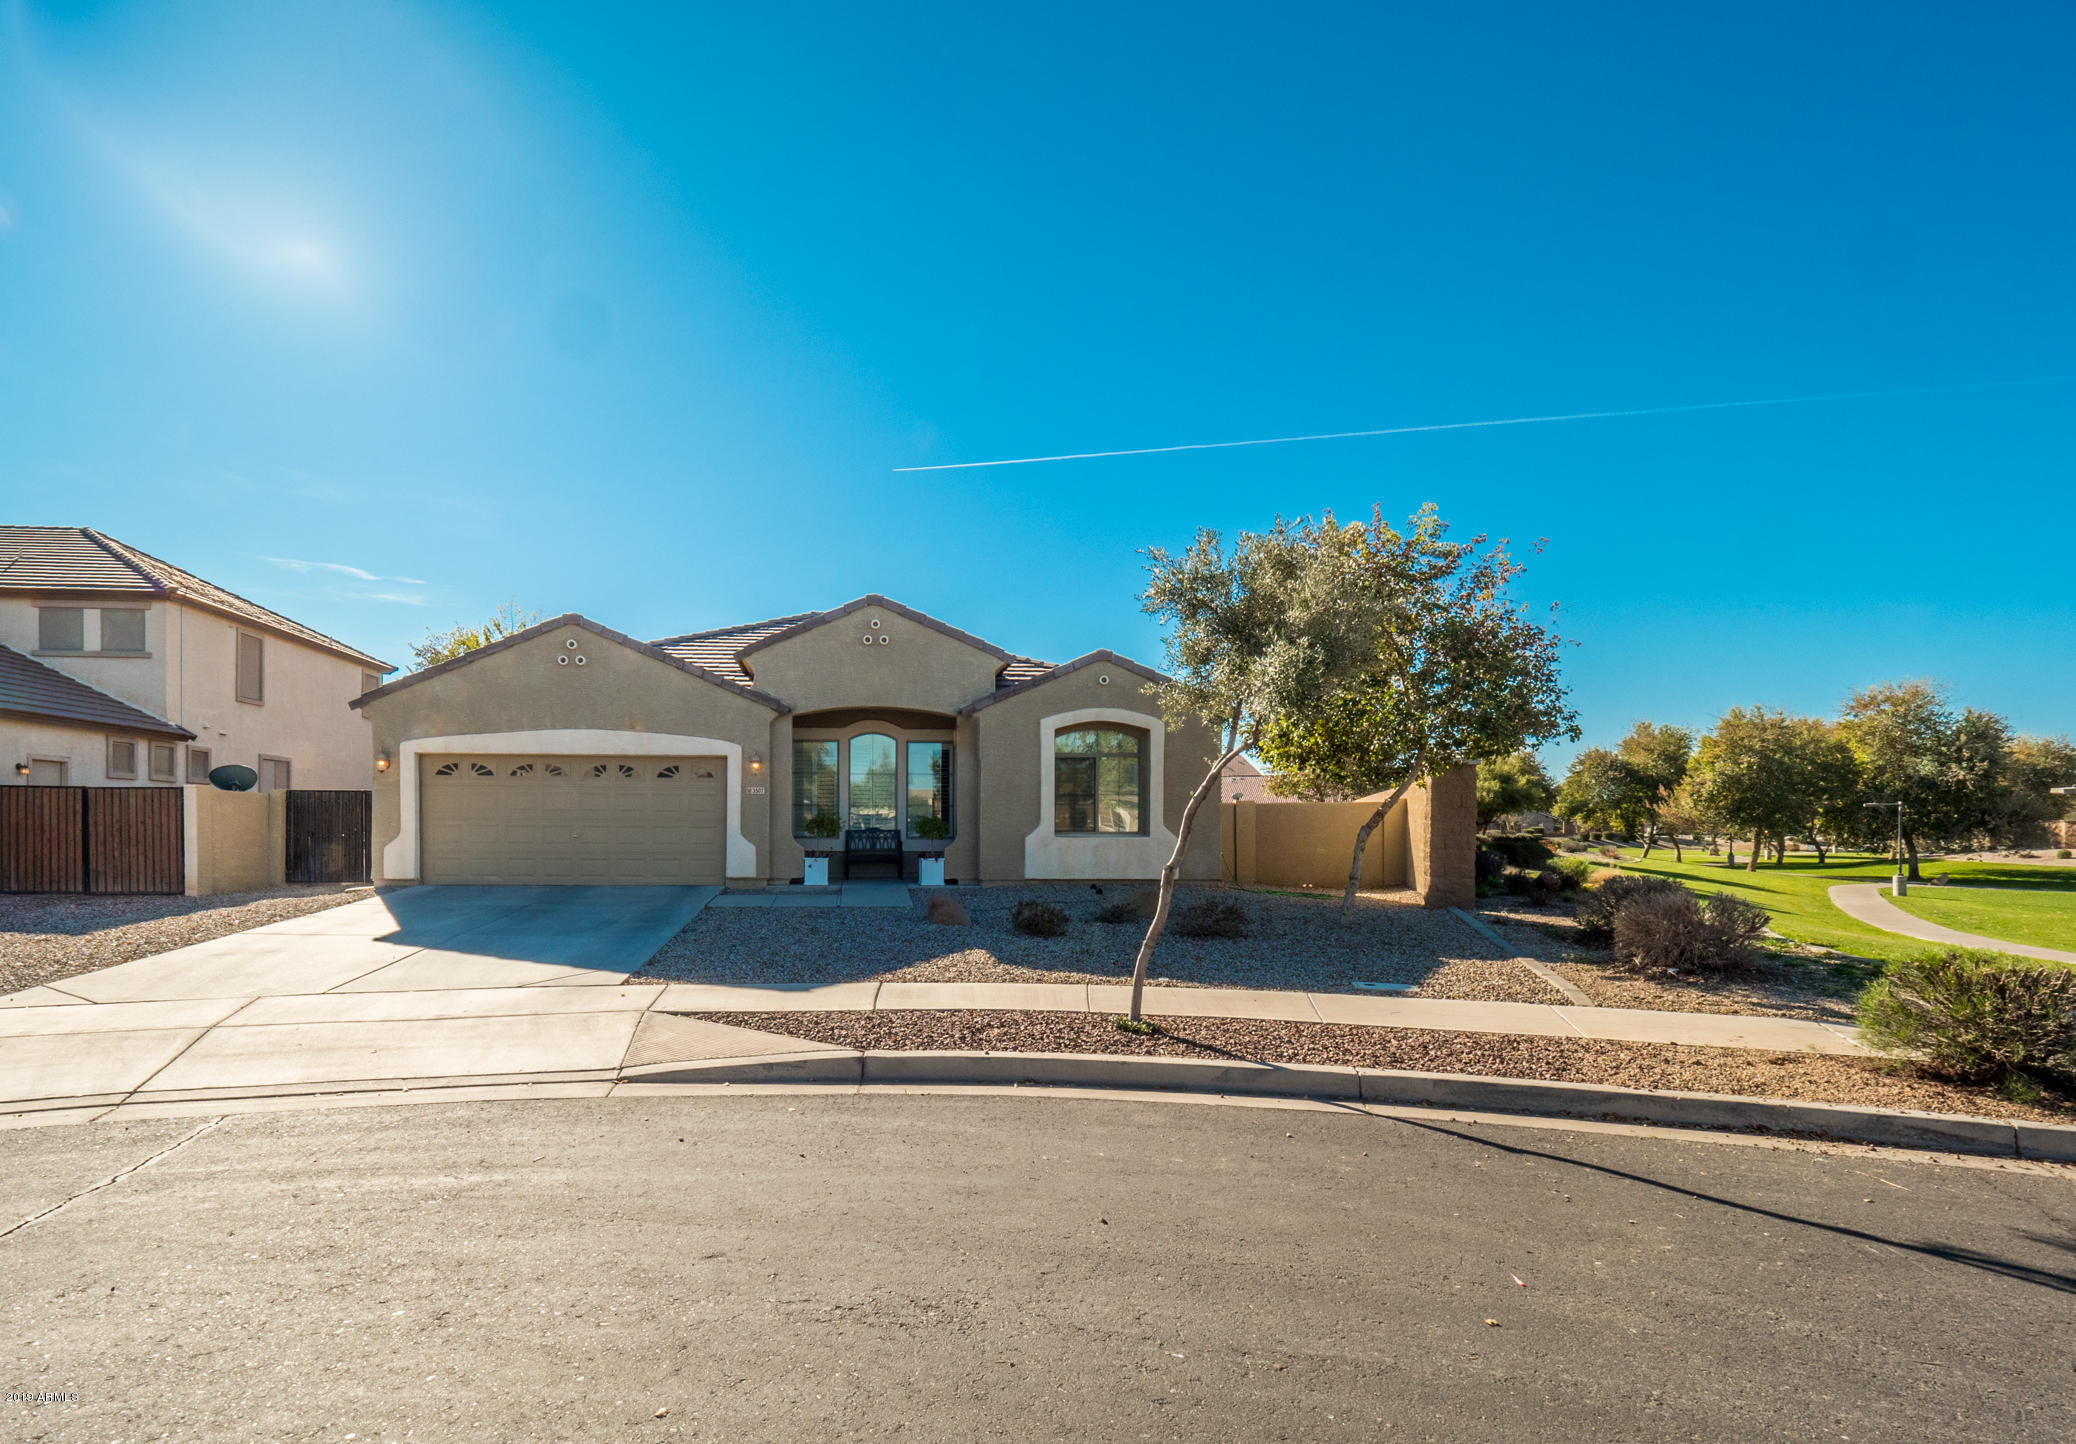 MLS 5872189 3507 E ELEANA Lane, Gilbert, AZ 85298 Gilbert AZ Marbella Vineyards